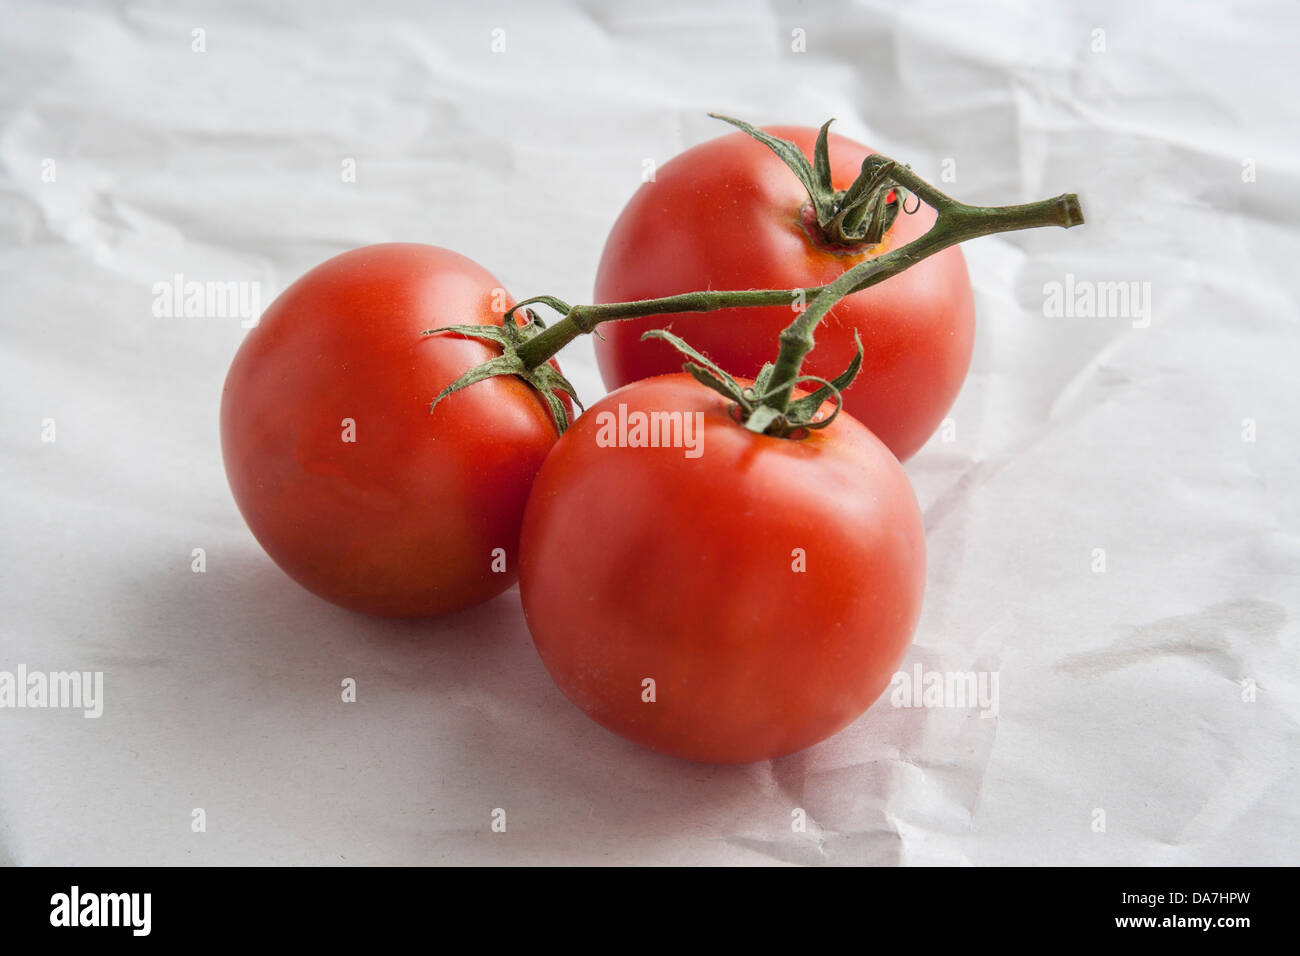 red ripe tomatoes on butcher paper - Stock Image